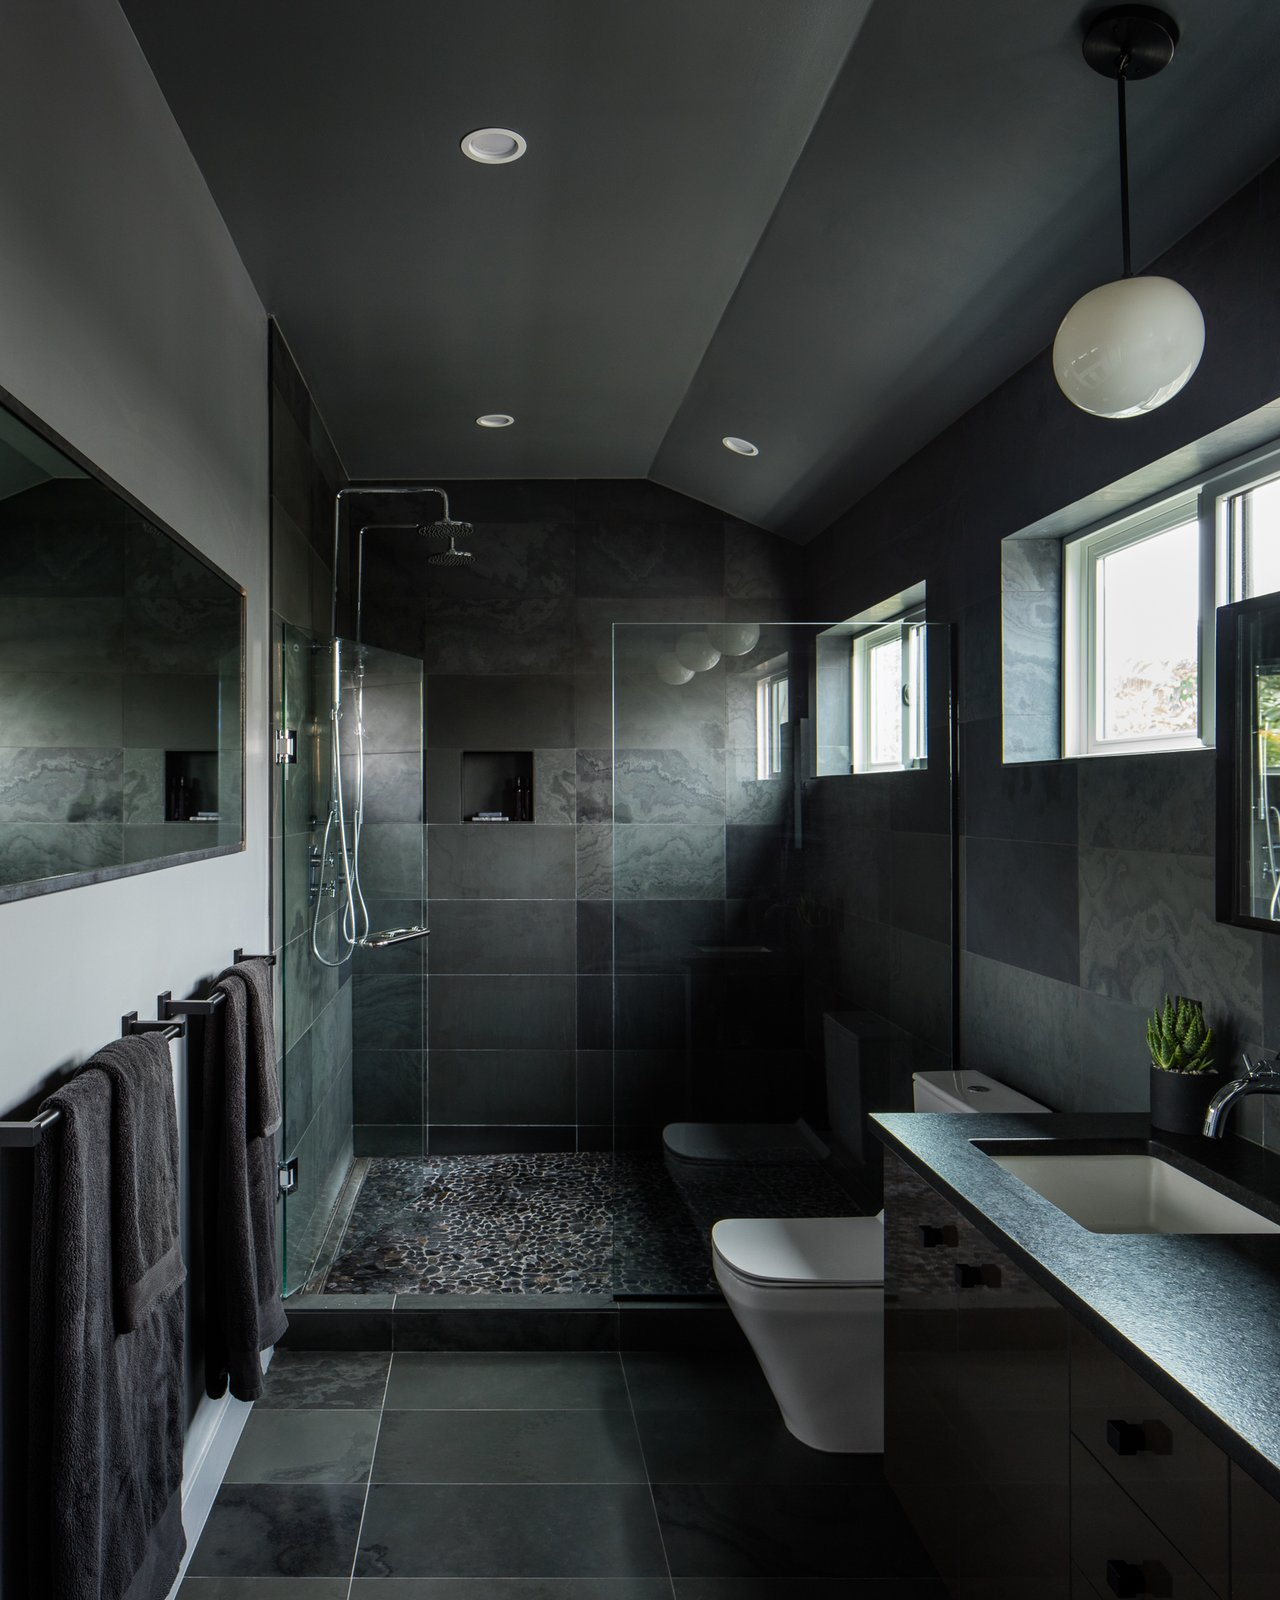 Bath, Engineered Quartz, Ceiling, Pendant, Porcelain Tile, Undermount, Full, Stone Tile, and One Piece Master Bathroom  Best Bath Undermount Full Stone Tile Photos from Lawrence Street Residence